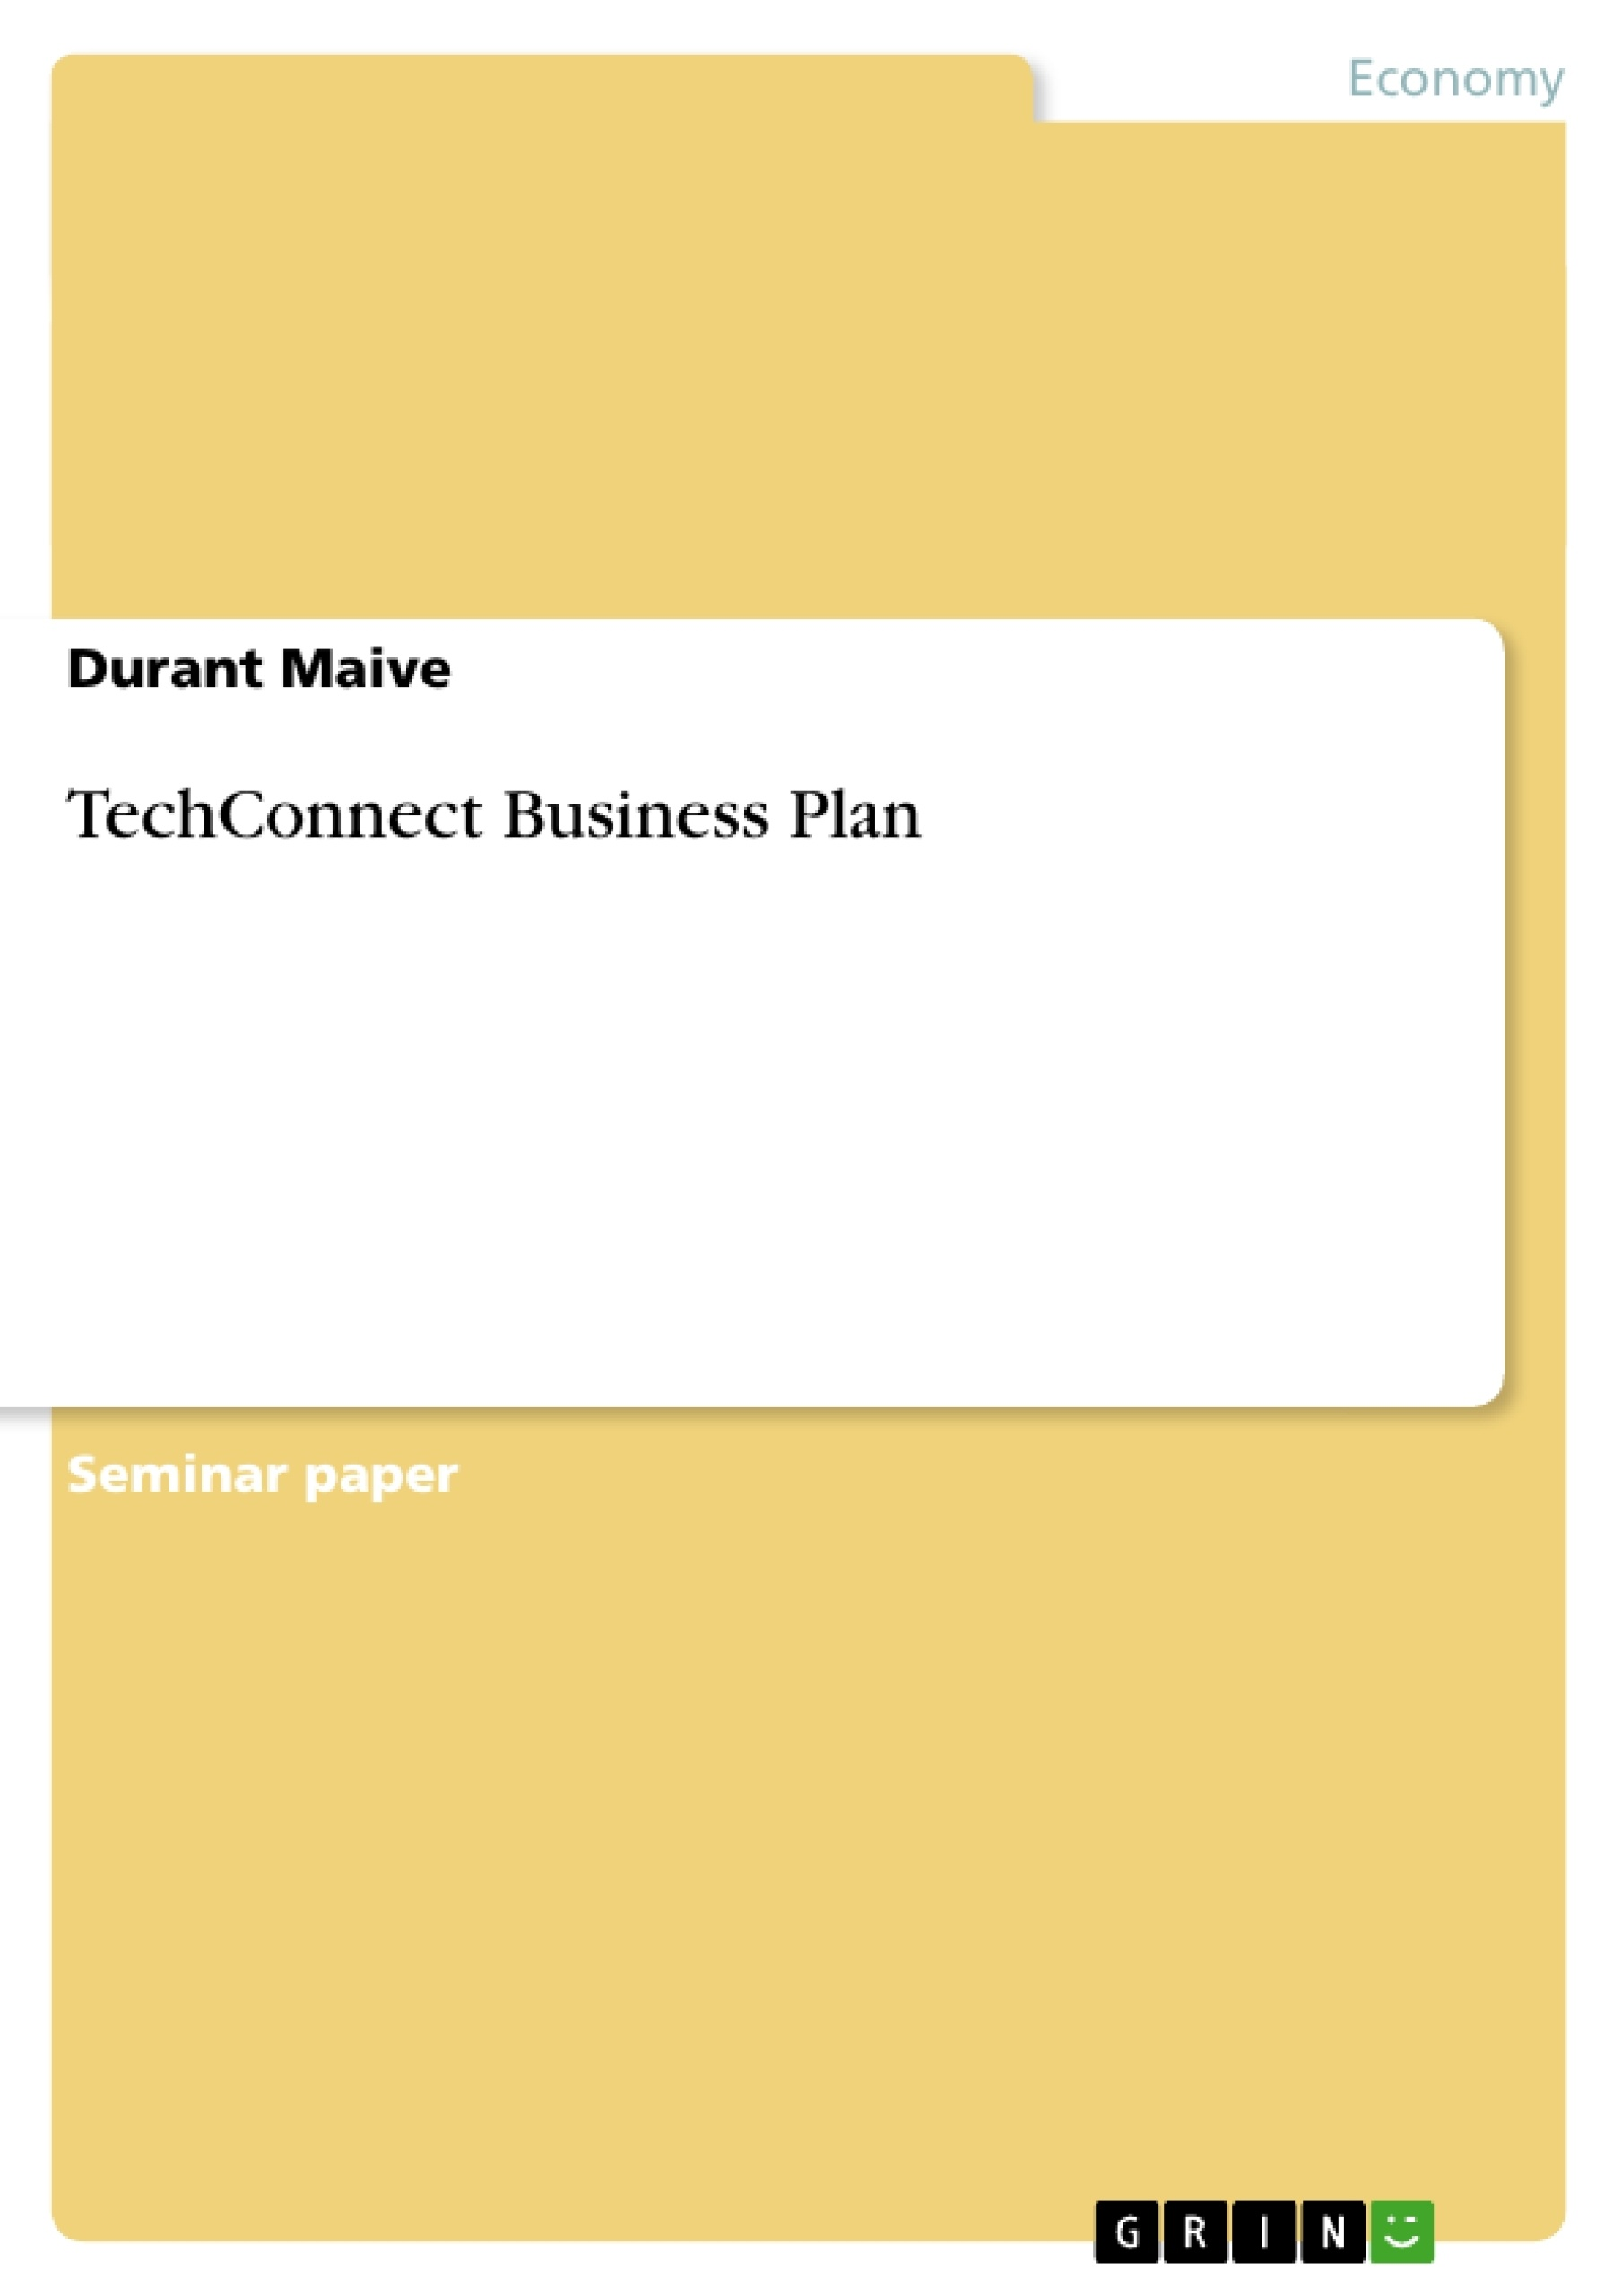 Business plan bachelor thesis